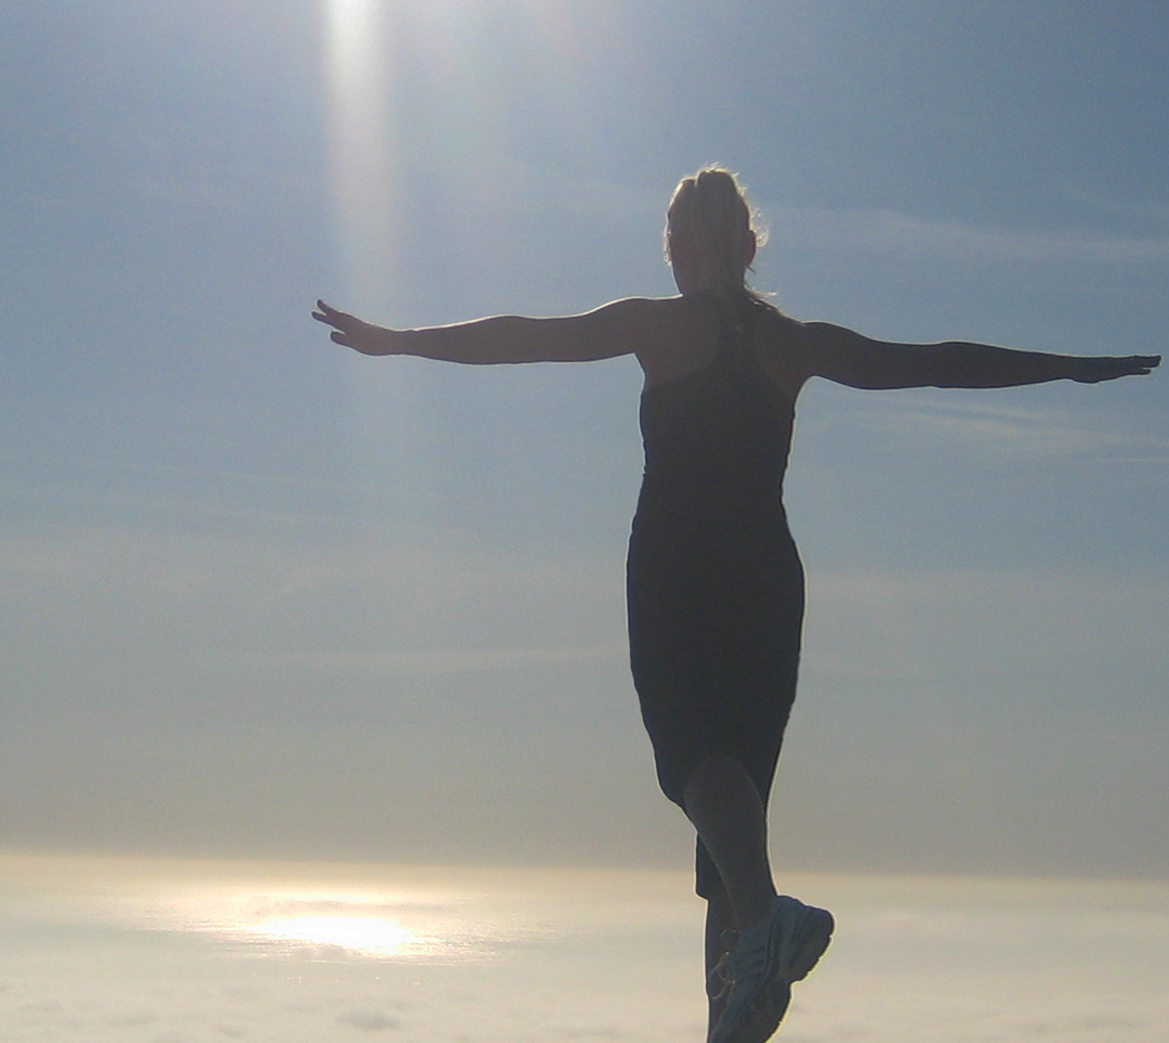 Alex Big Jumps -  above the clouds, Palos Verdes overlooking cloud-covered ocean,  image by lb for linenandlavender.net - http://www.linenandlavender.net/2013/10/courage-and-fear.html